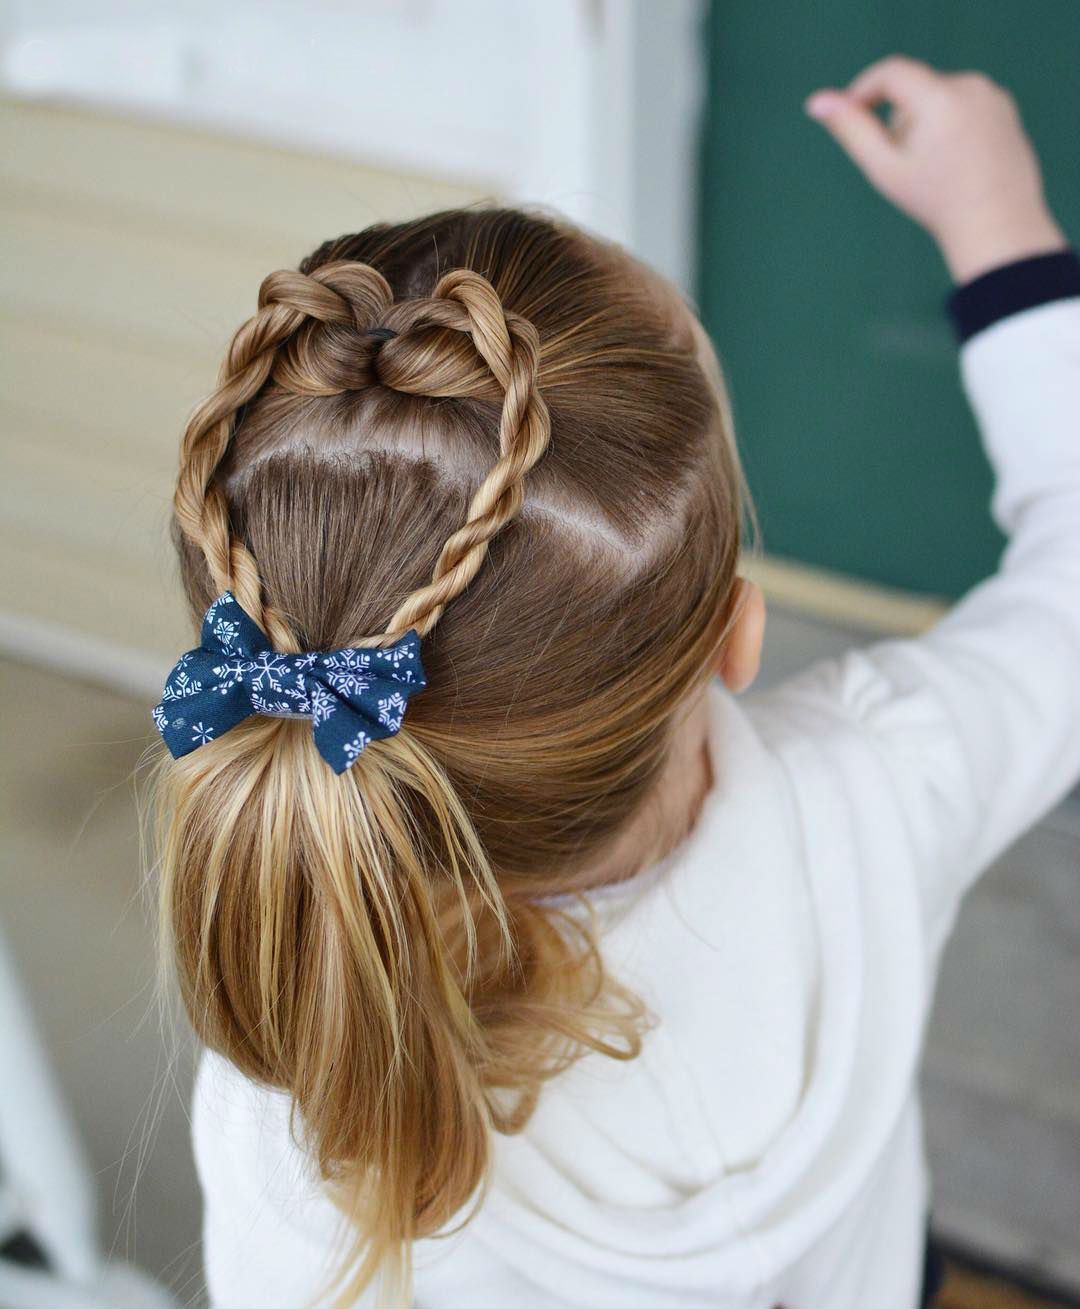 Nice cute ideas on braids for girls sweet and stylish marlowe